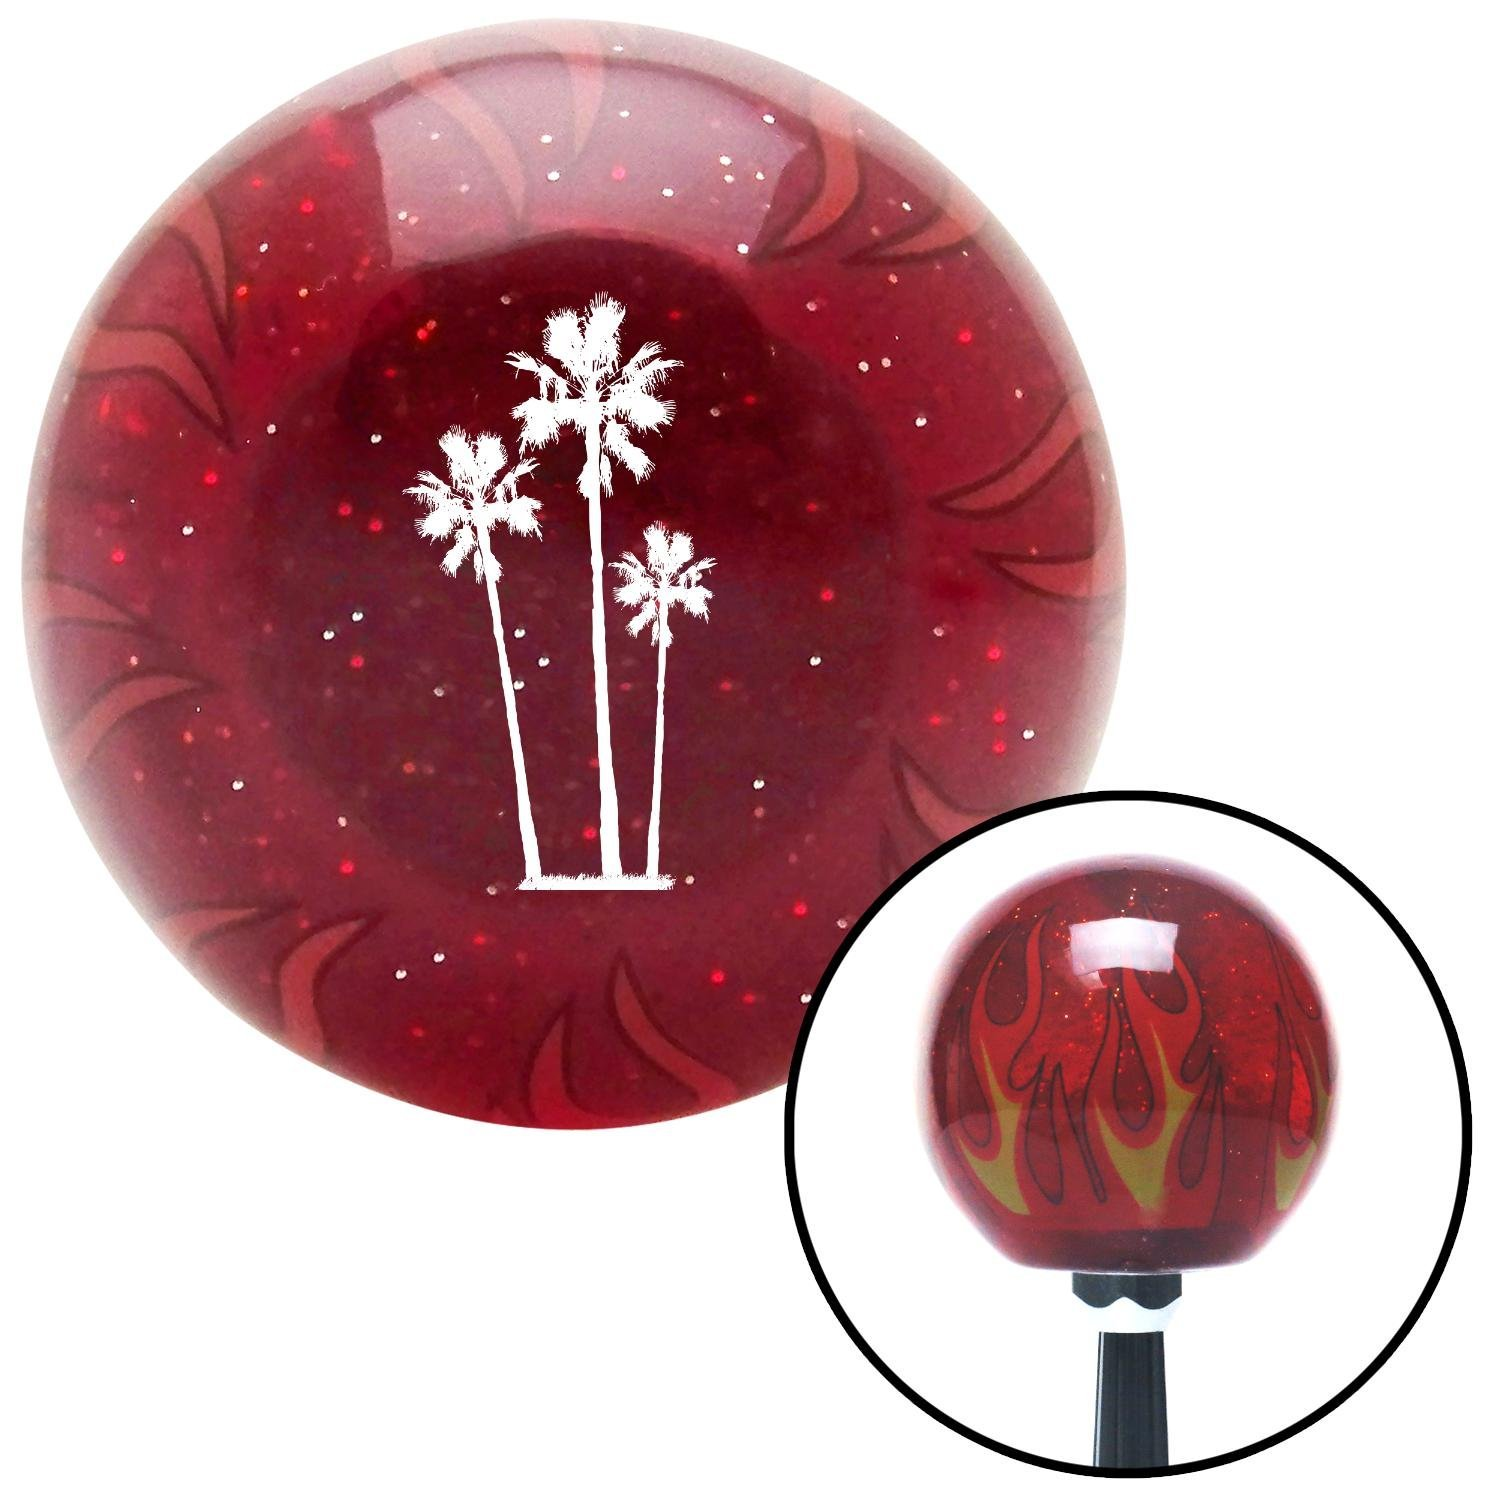 White Group of Palms American Shifter 240926 Red Flame Metal Flake Shift Knob with M16 x 1.5 Insert